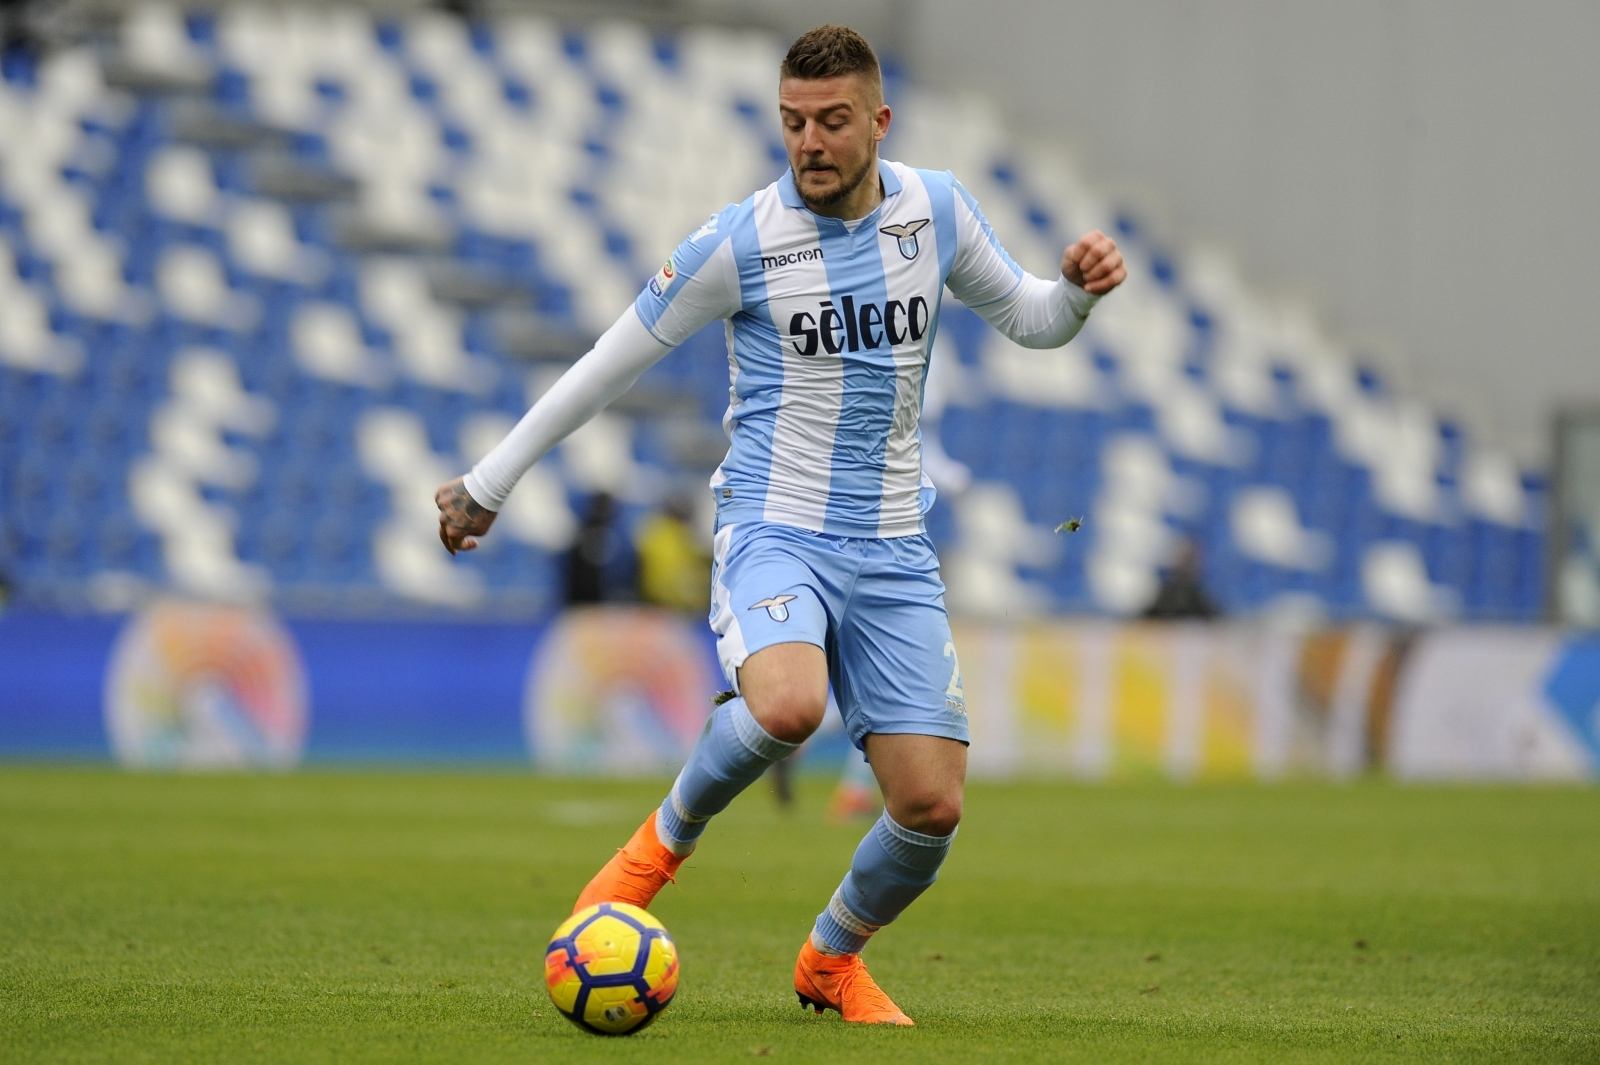 Milinkovic-Savic nets 2 in Lazio win; Juve game snowed out